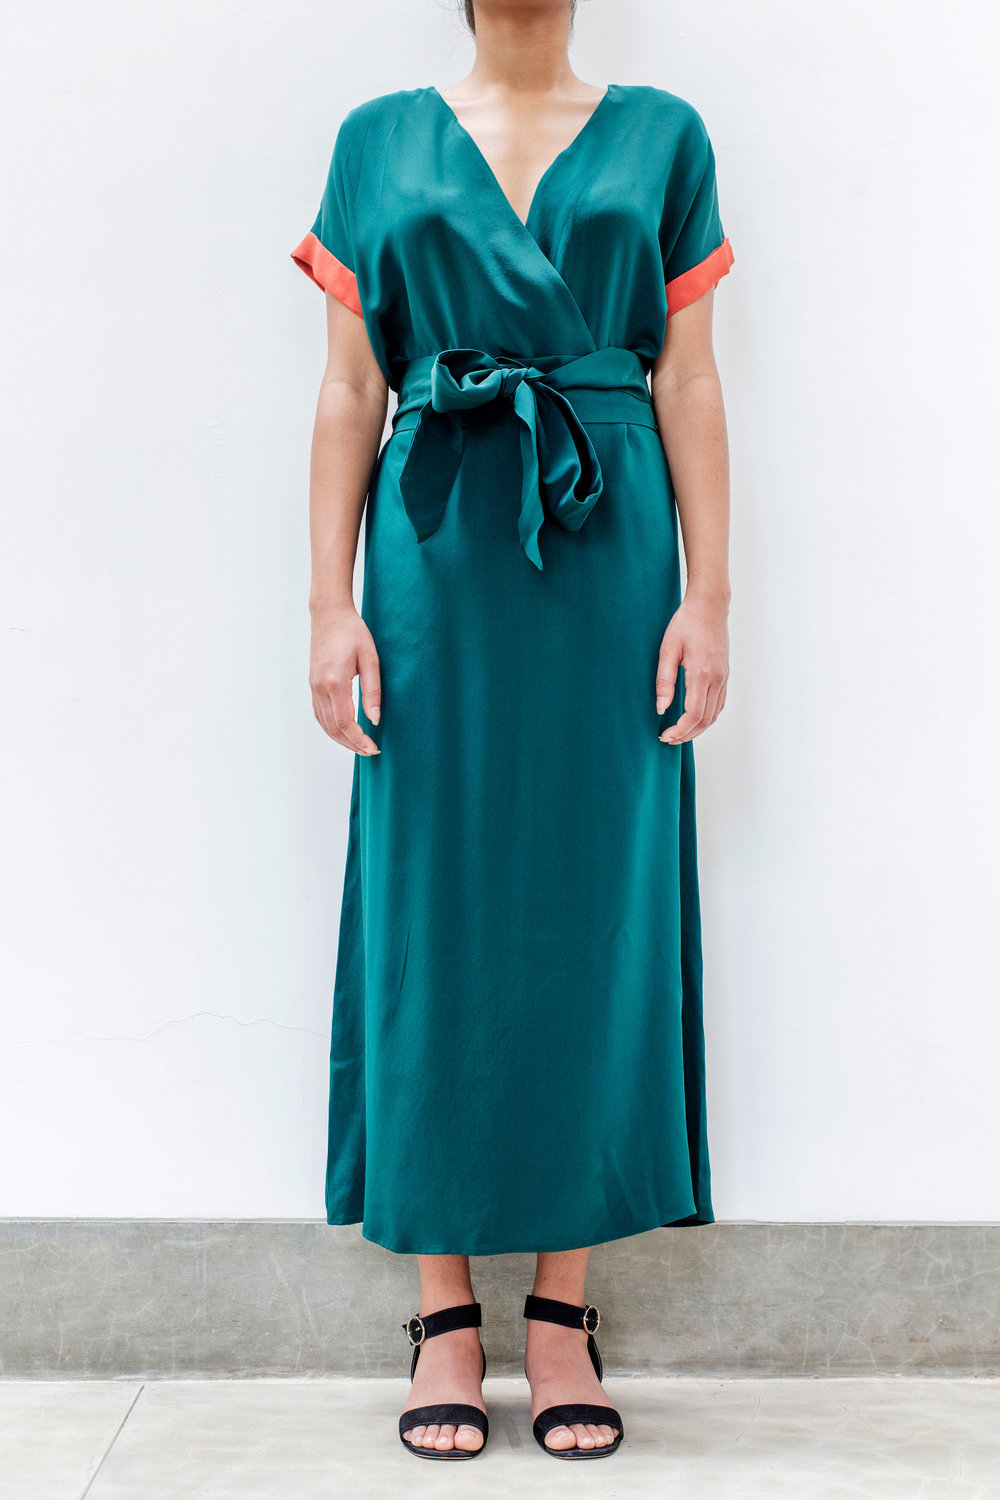 SHAANA-WRAP-DRESS---EMERALD.jpg